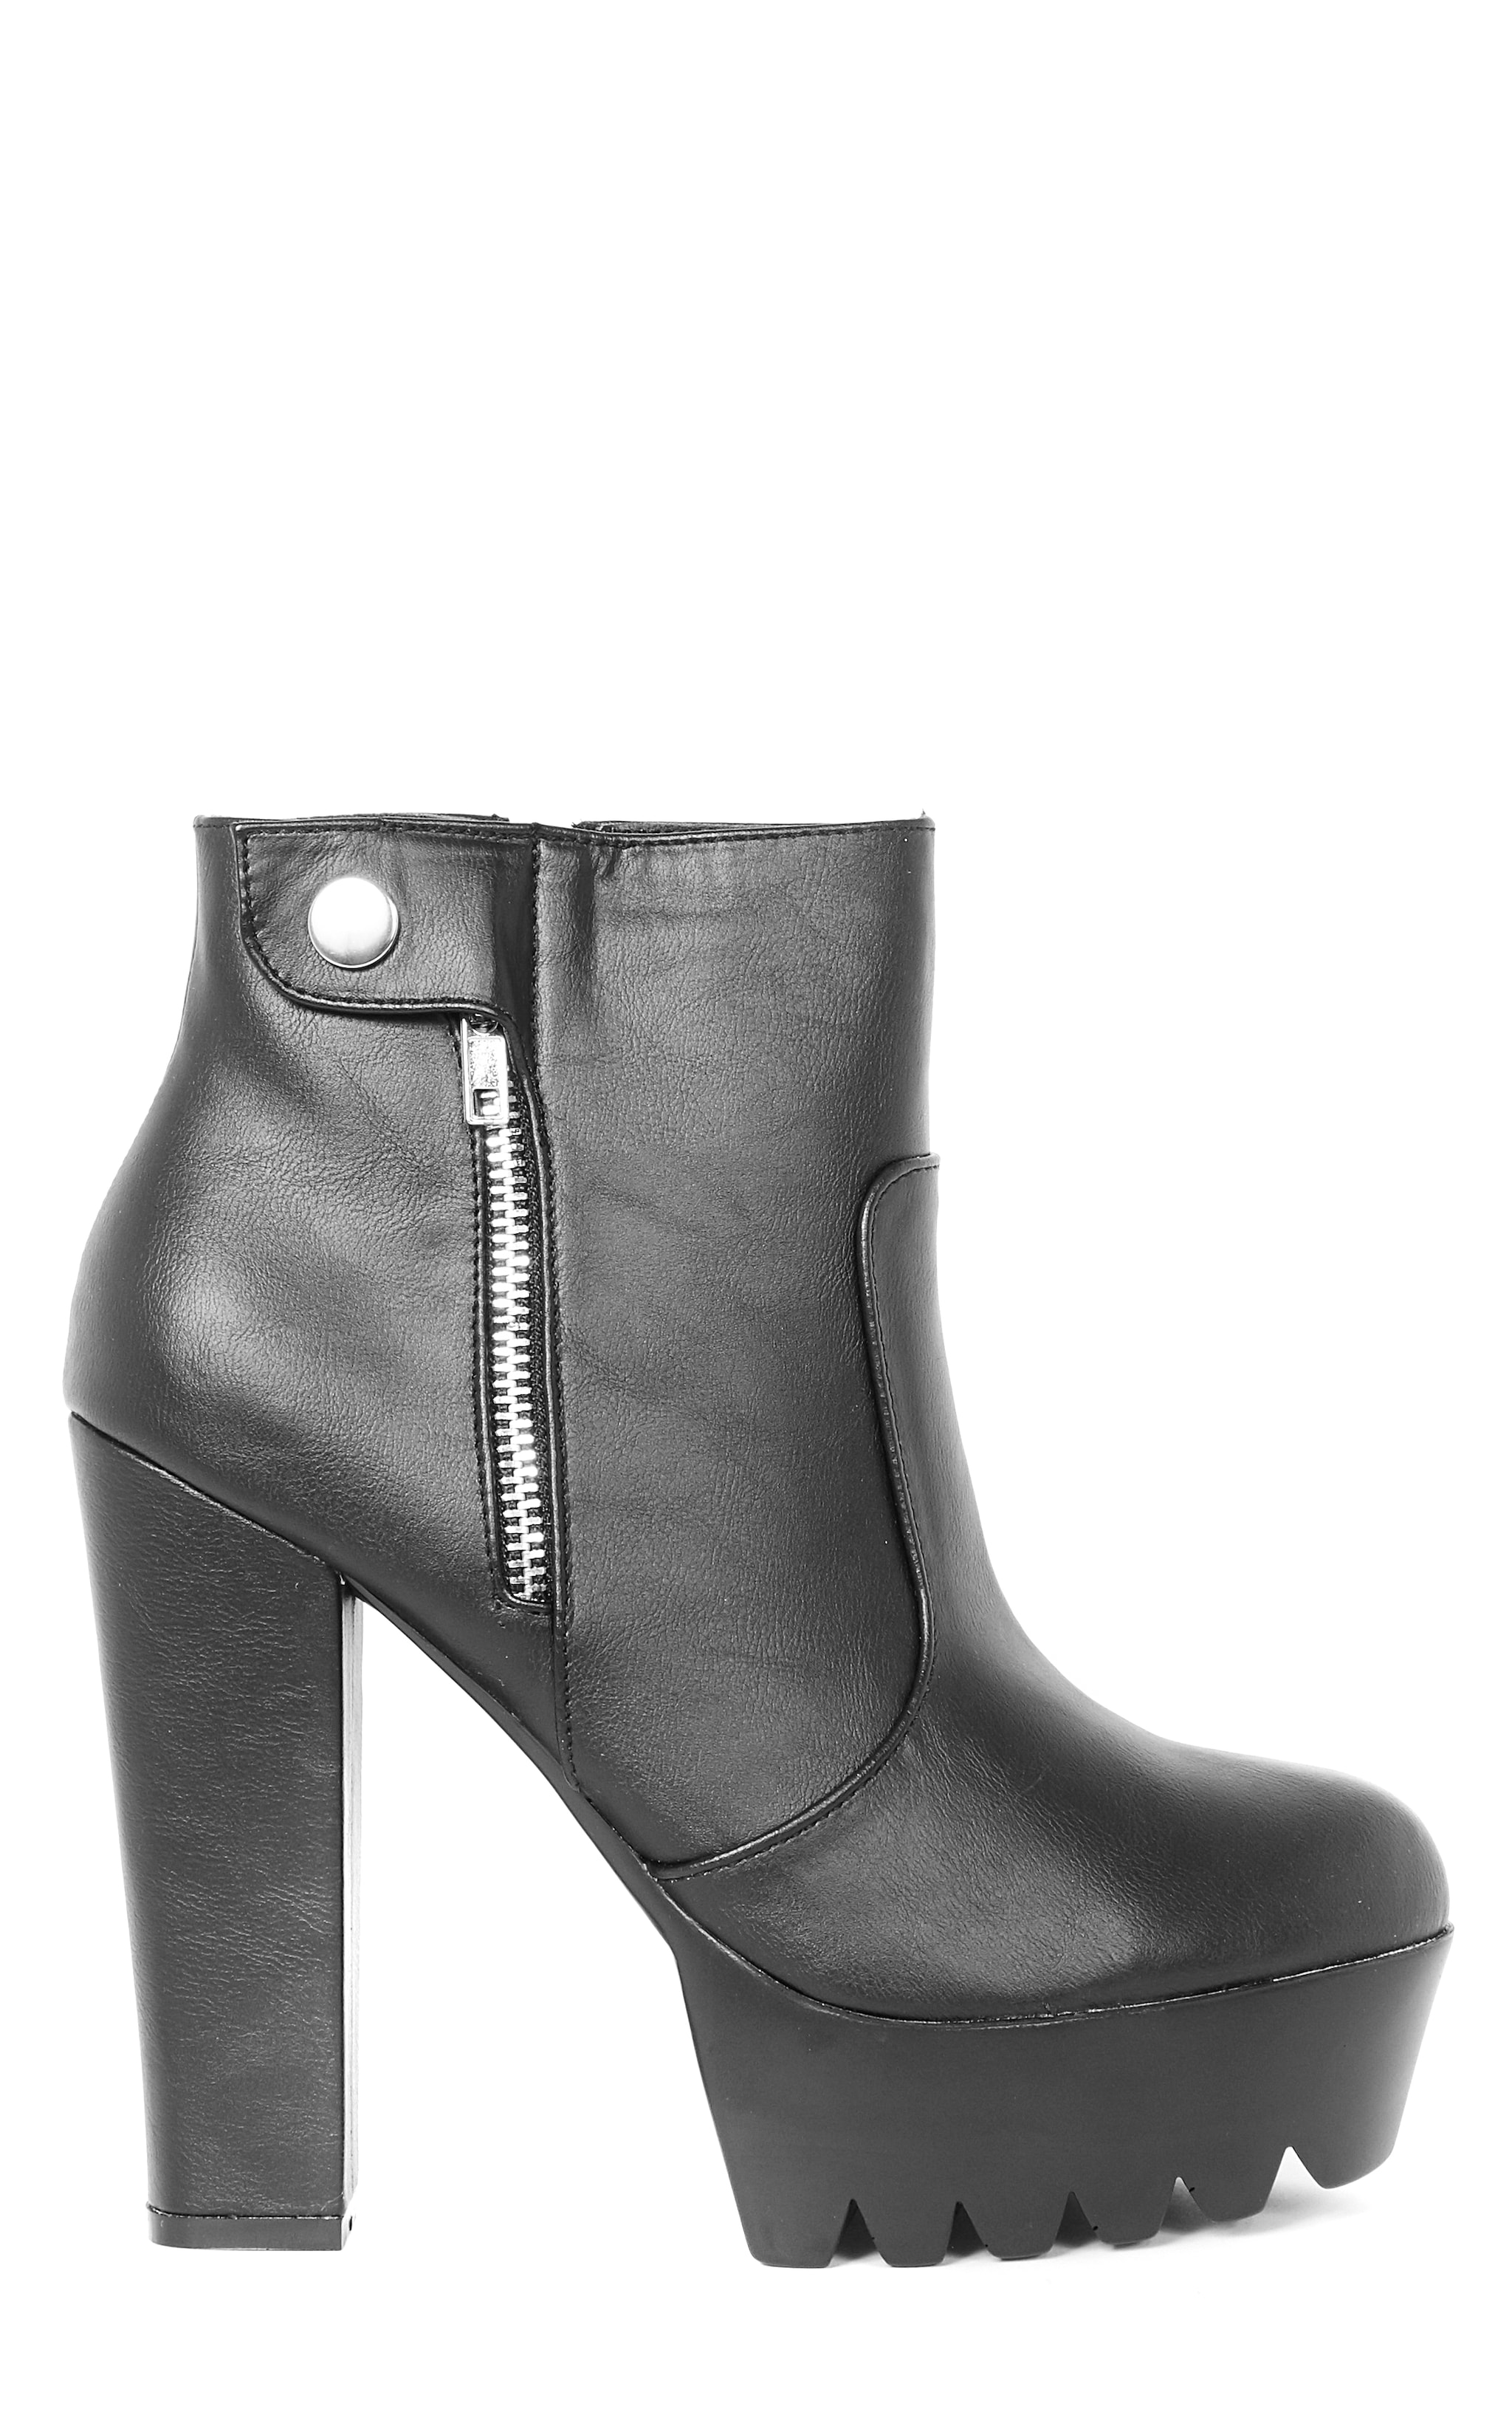 Liberty Black Cleated Sole Zip Detail Boot  5